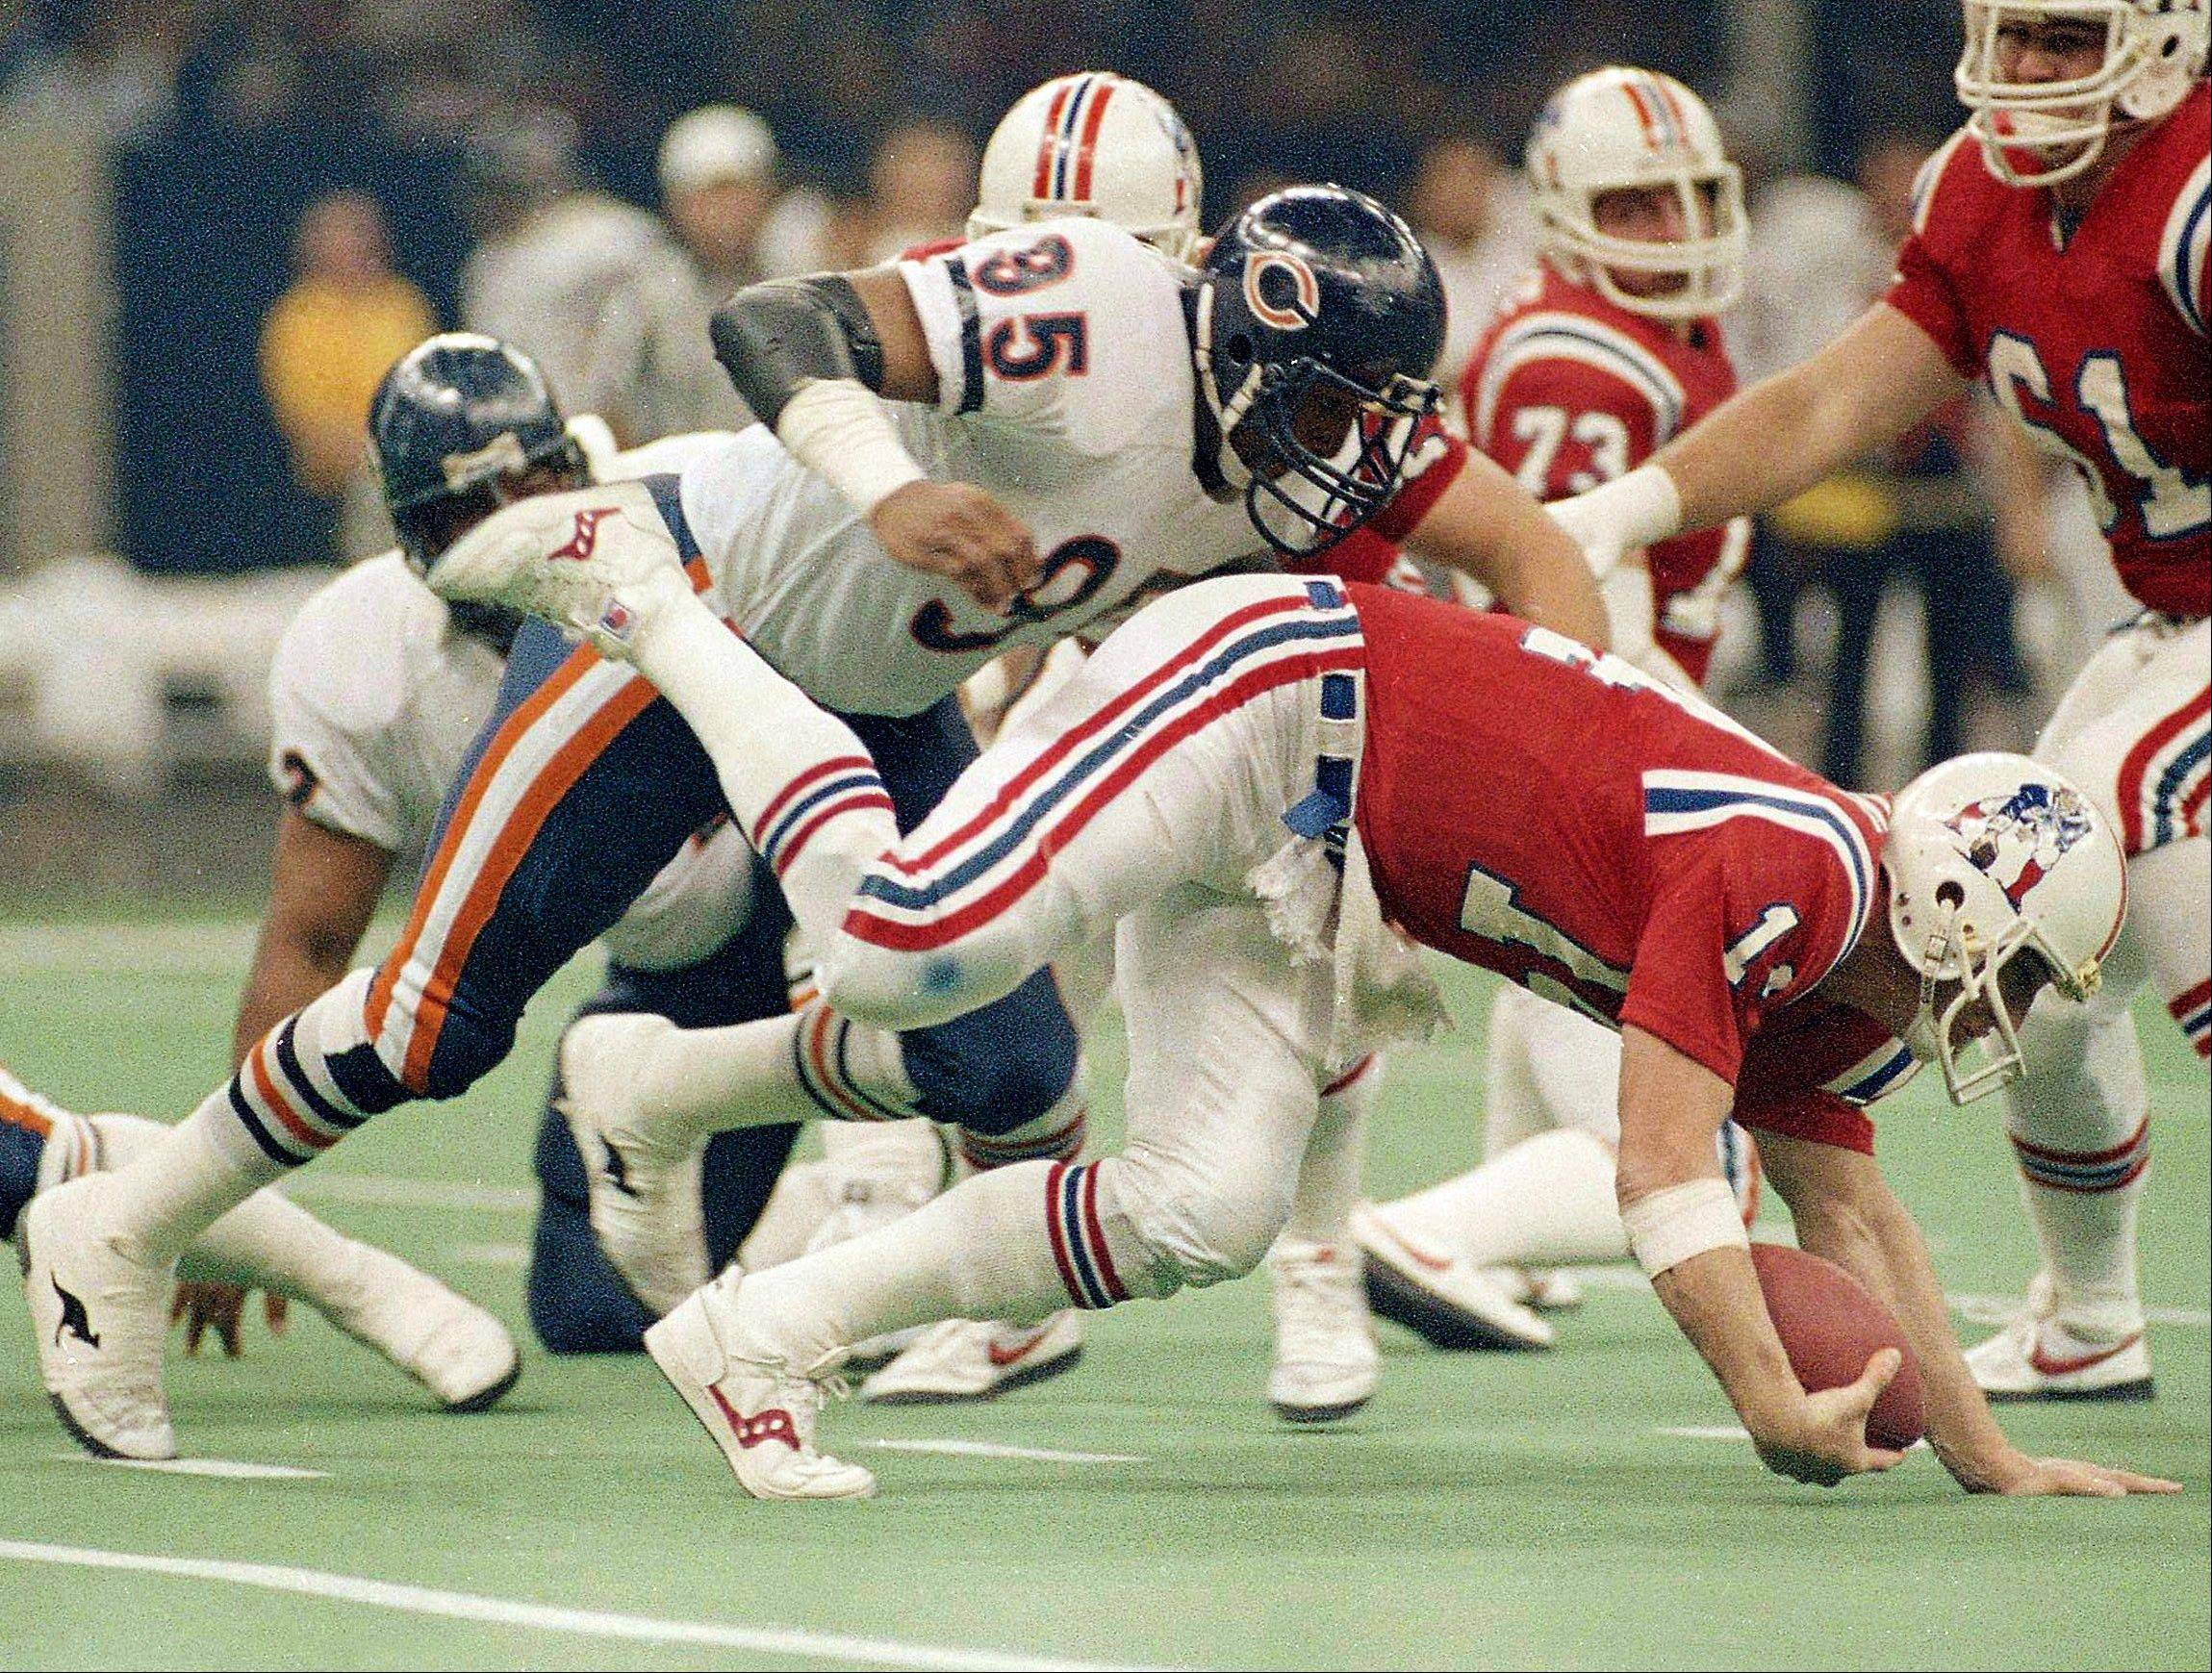 Richard Dent, about to sack New England Patriots quarterback Steve Grogan during Super Bowl XX, earned the nickname �Sackman� during his NFL career. His book talks about earning respect after coming into the league as an unheralded college player.